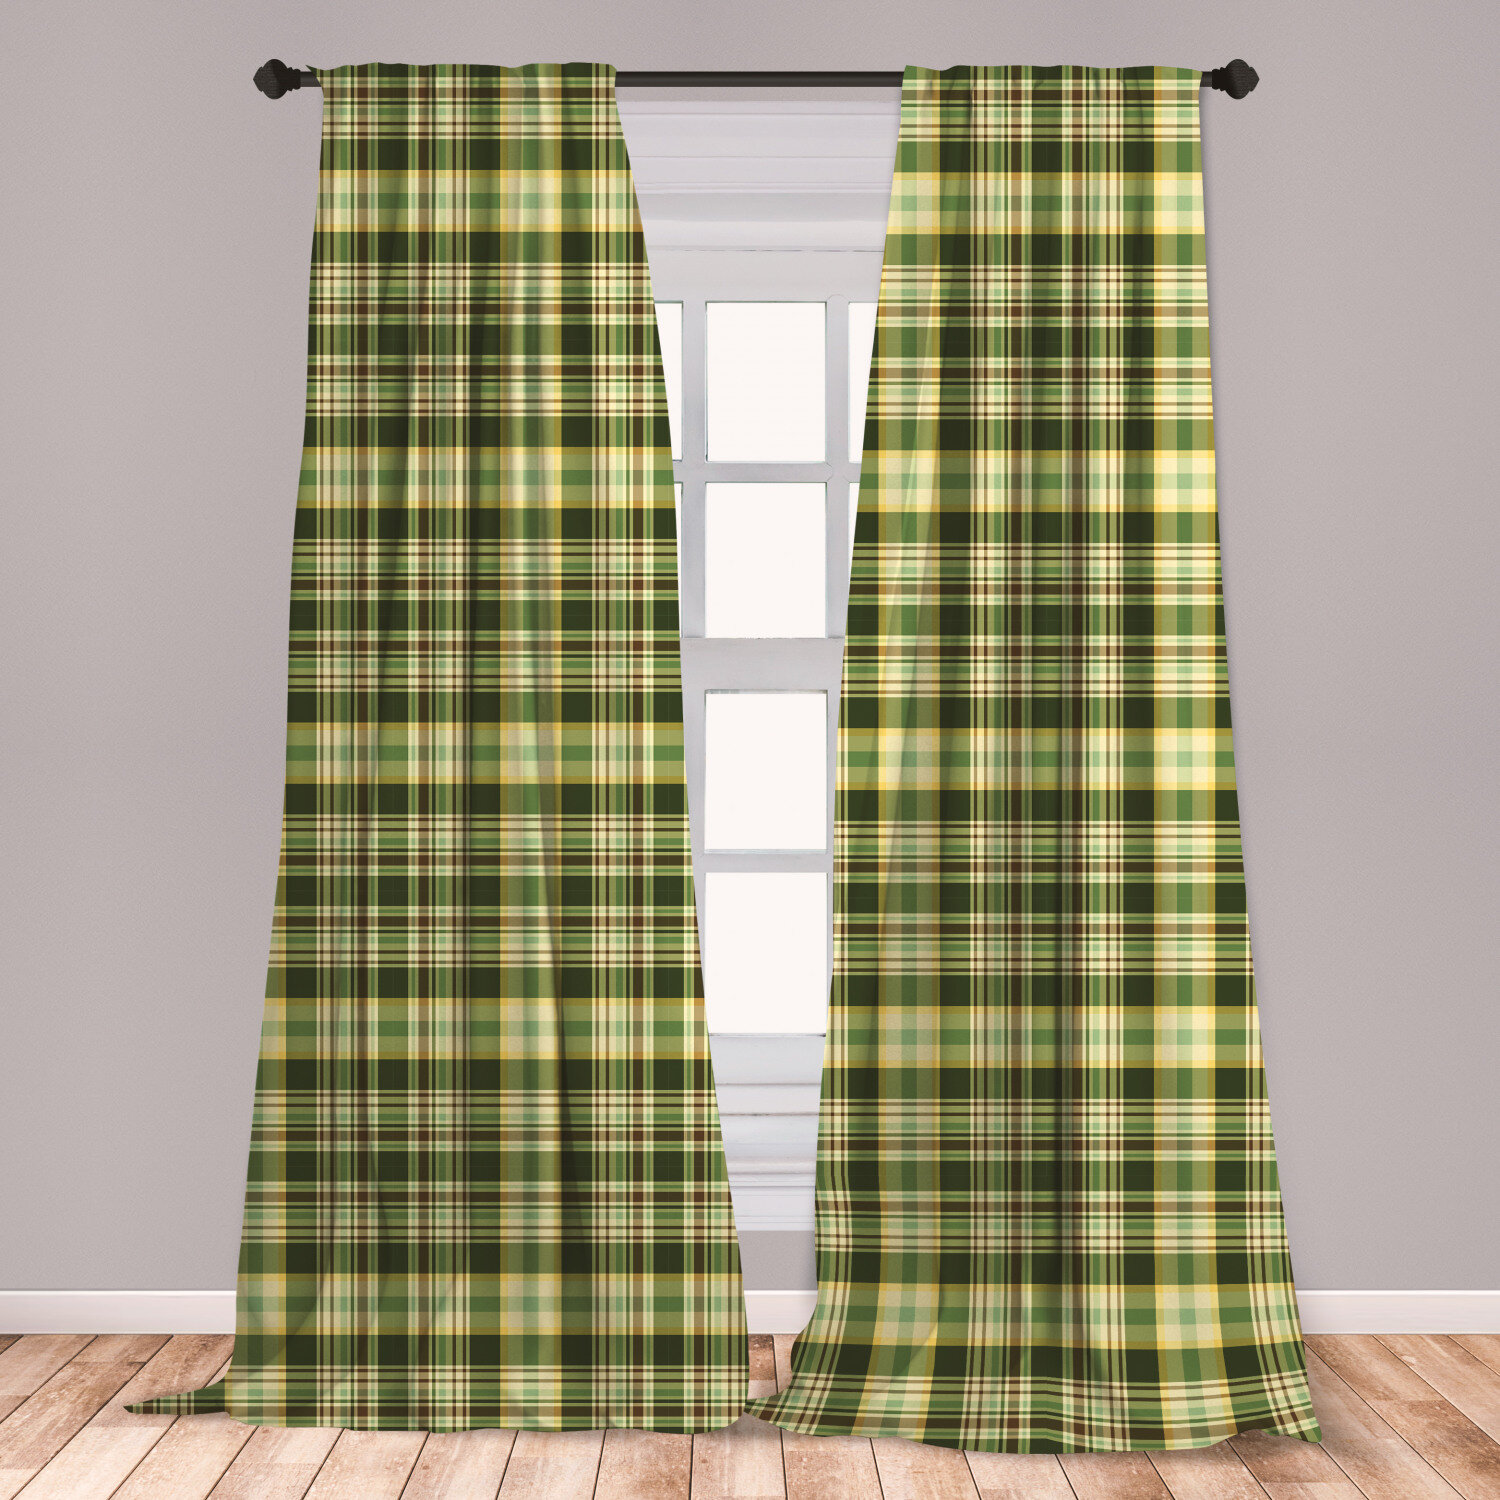 East Urban Home Ambesonne Olive Green 2 Panel Curtain Set Quilt Pattern Traditional Scottish Design Checkered Geometrical Lightweight Window Treatment Living Room Bedroom Decor 56 X 63 Dark Green Yellow Brown Wayfair